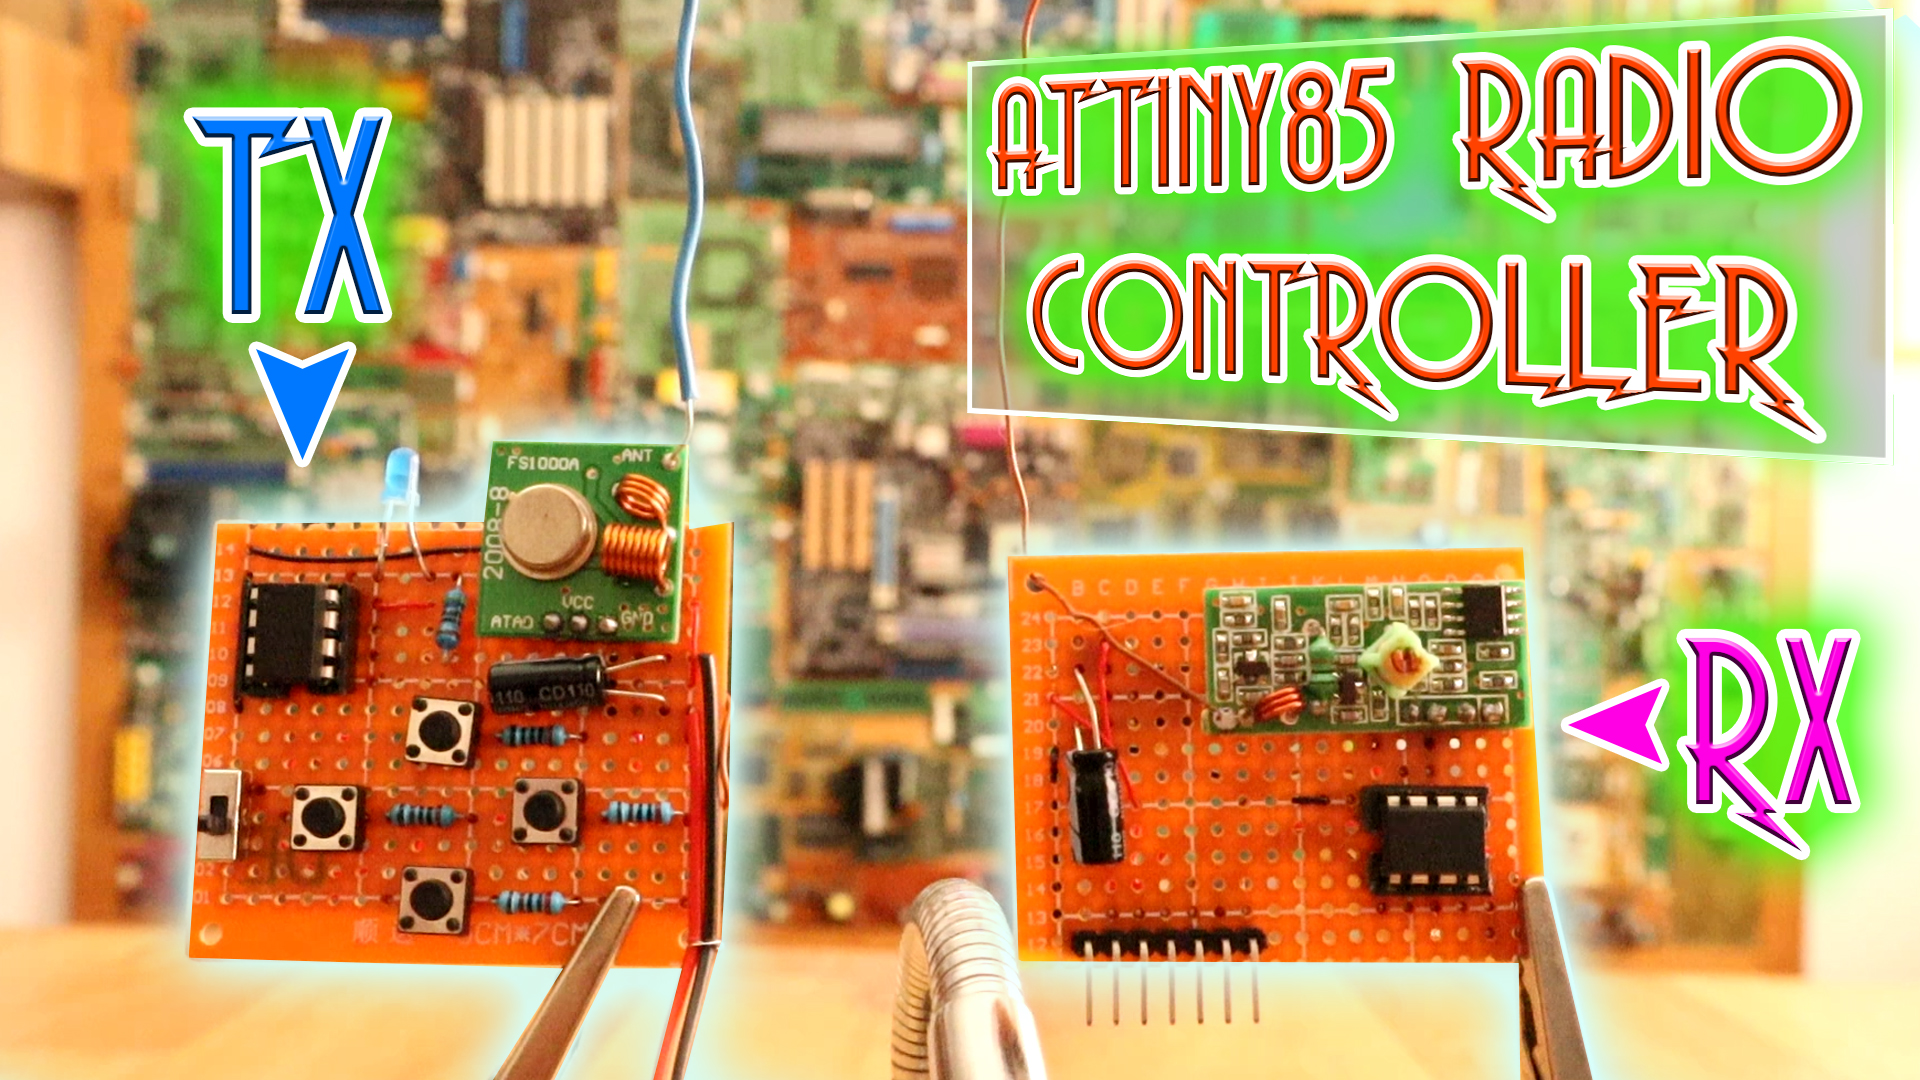 Arduino Tutorials Begginers Advanced Easy Basic Simple Circuit Using The Attiny85 Microcontroller An Rgb Led And Some In This Tutorial We Will Make Most Radio Controller There Is Attiny A 433mhz Module Entire Project Costs Around 3